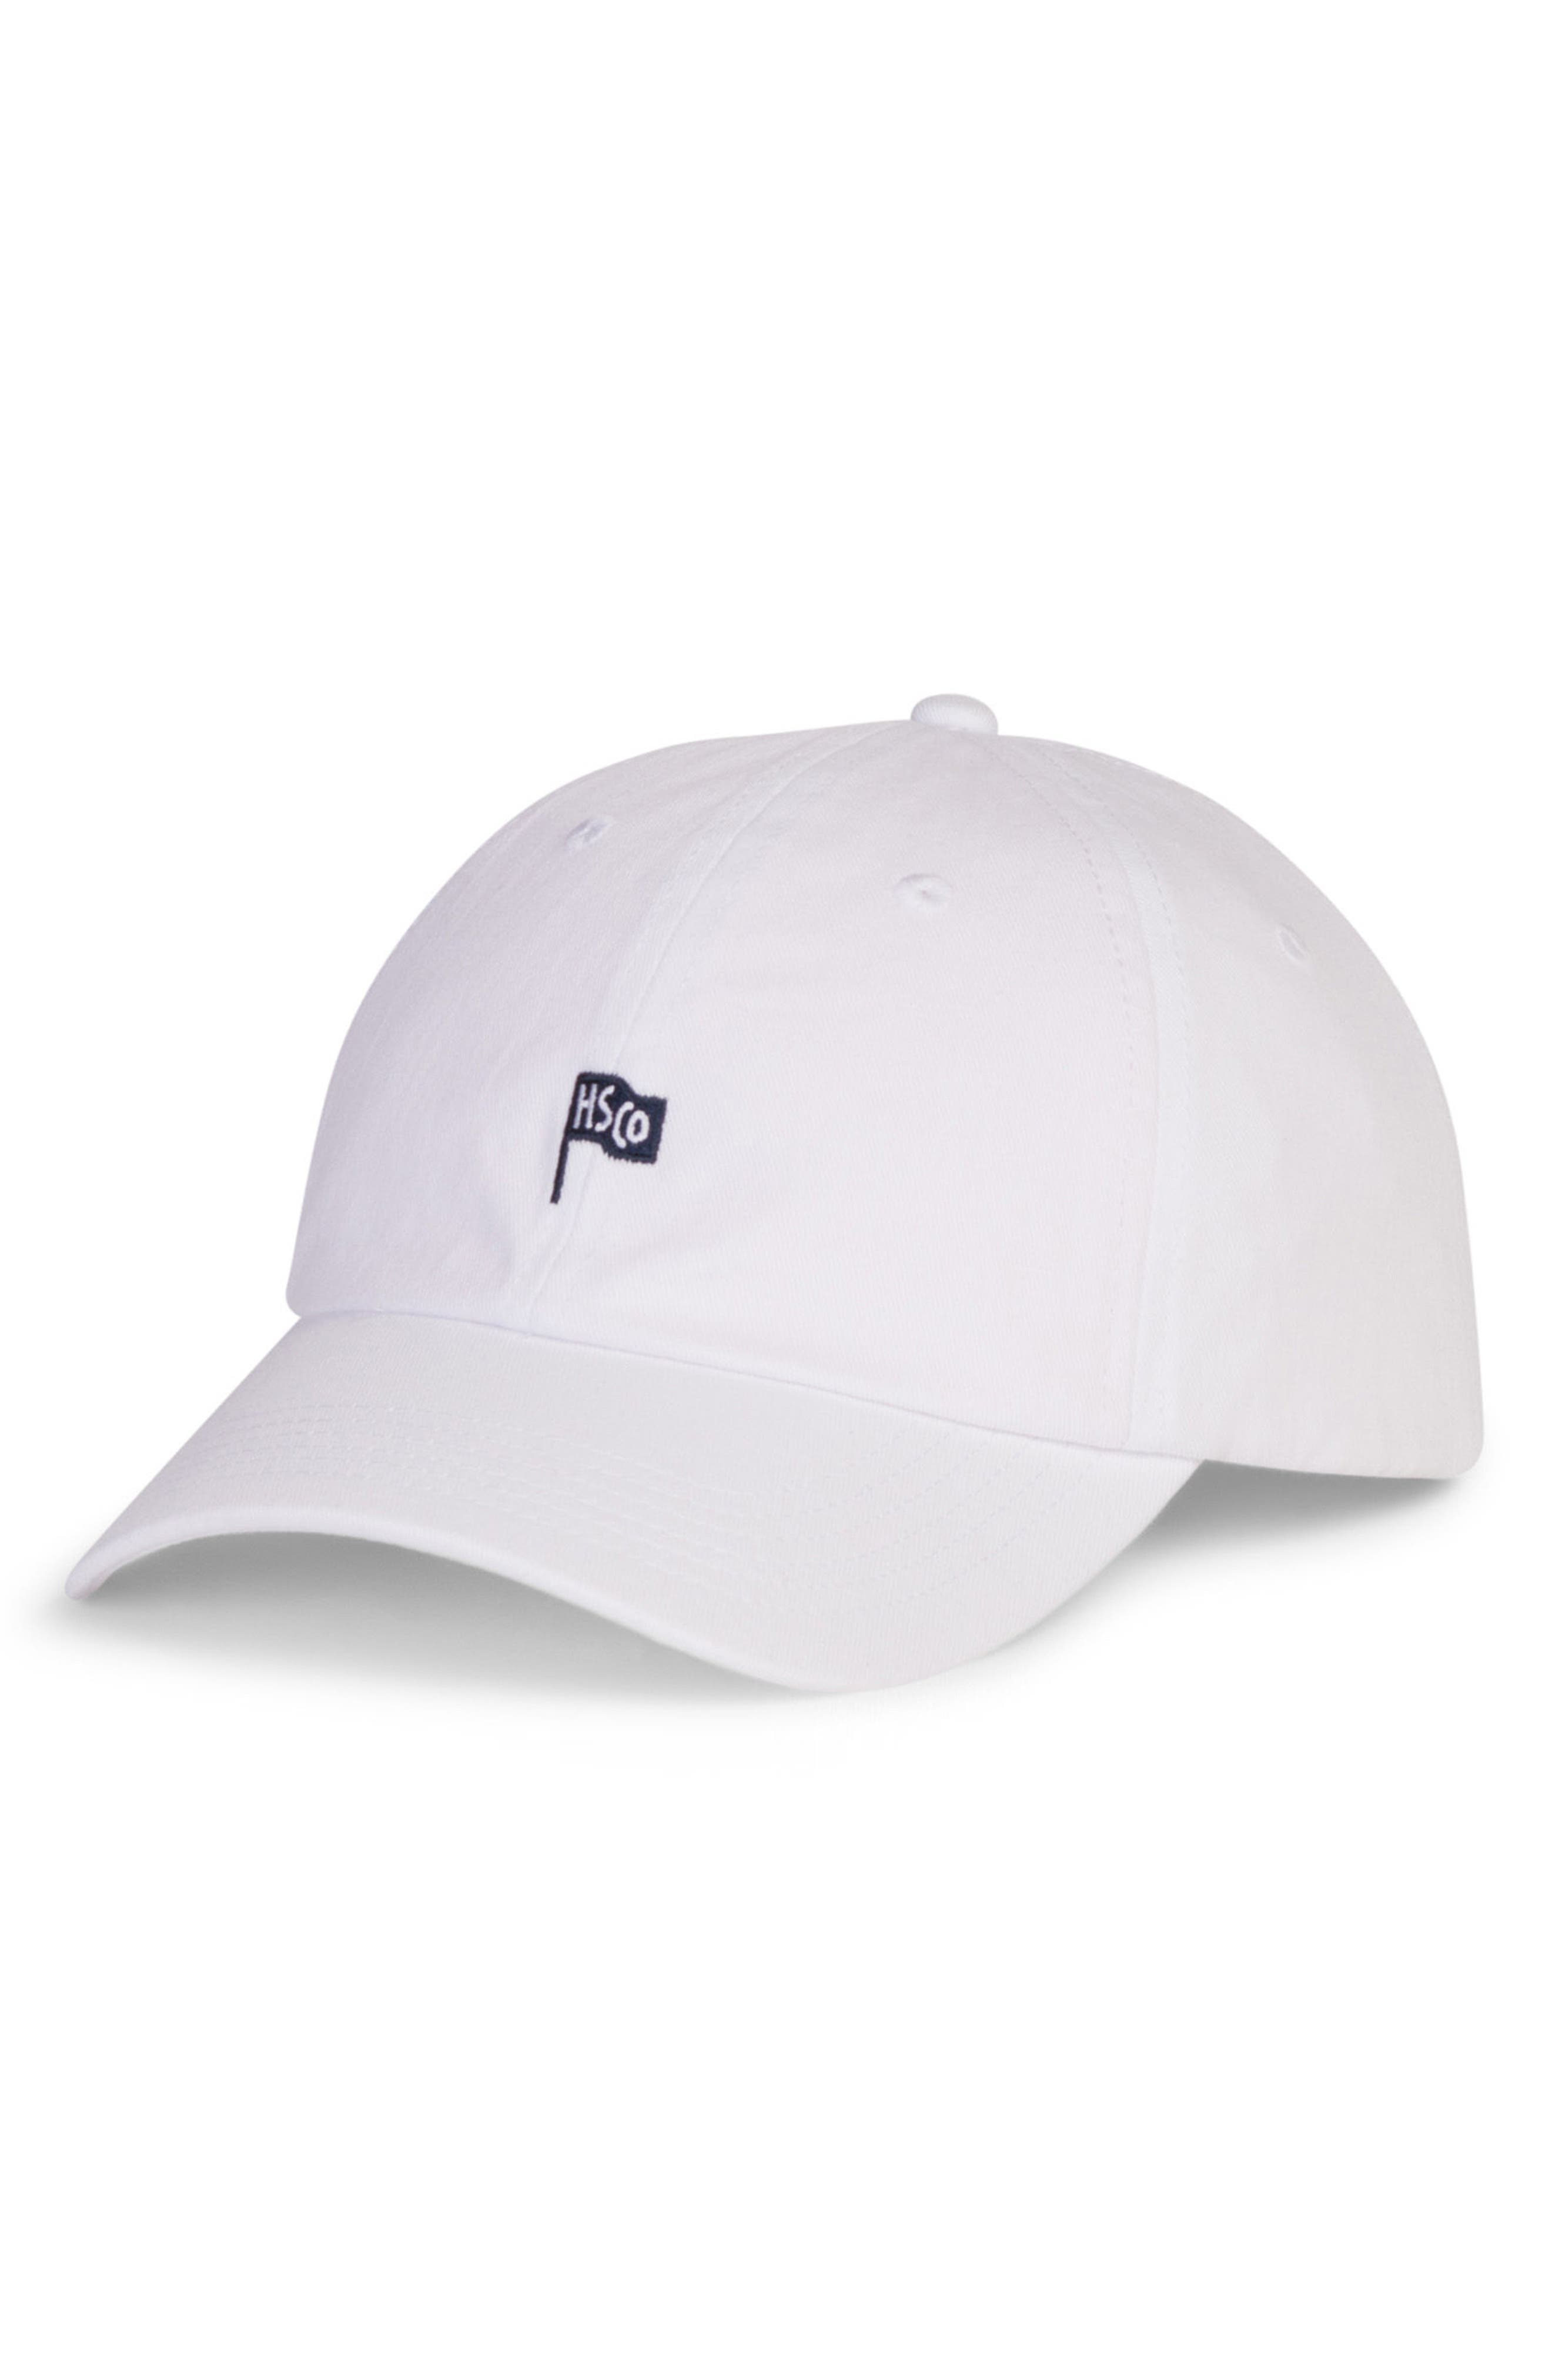 Sylas Baseball Cap,                         Main,                         color, 105